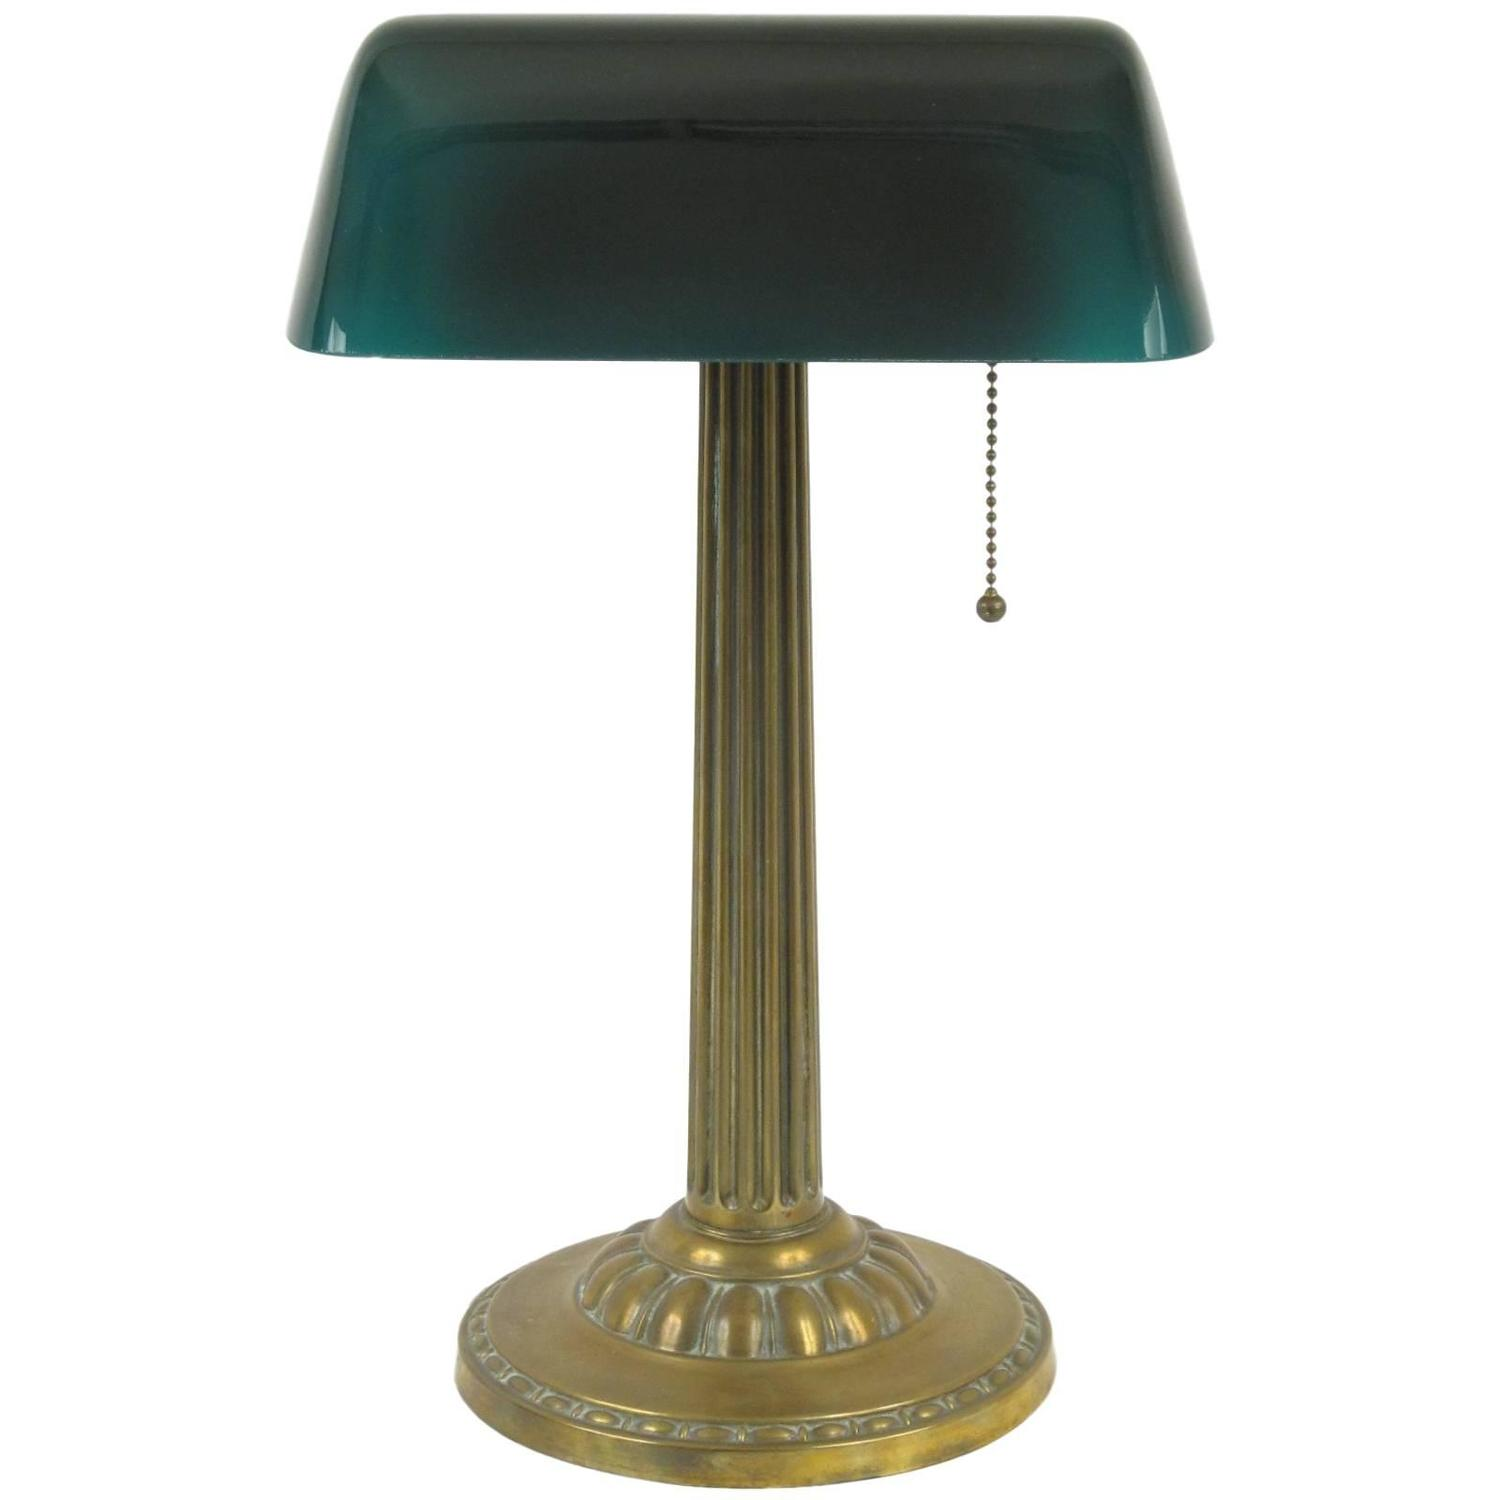 amronlite green glass shade bankers desk lamp at 1stdibs. Black Bedroom Furniture Sets. Home Design Ideas